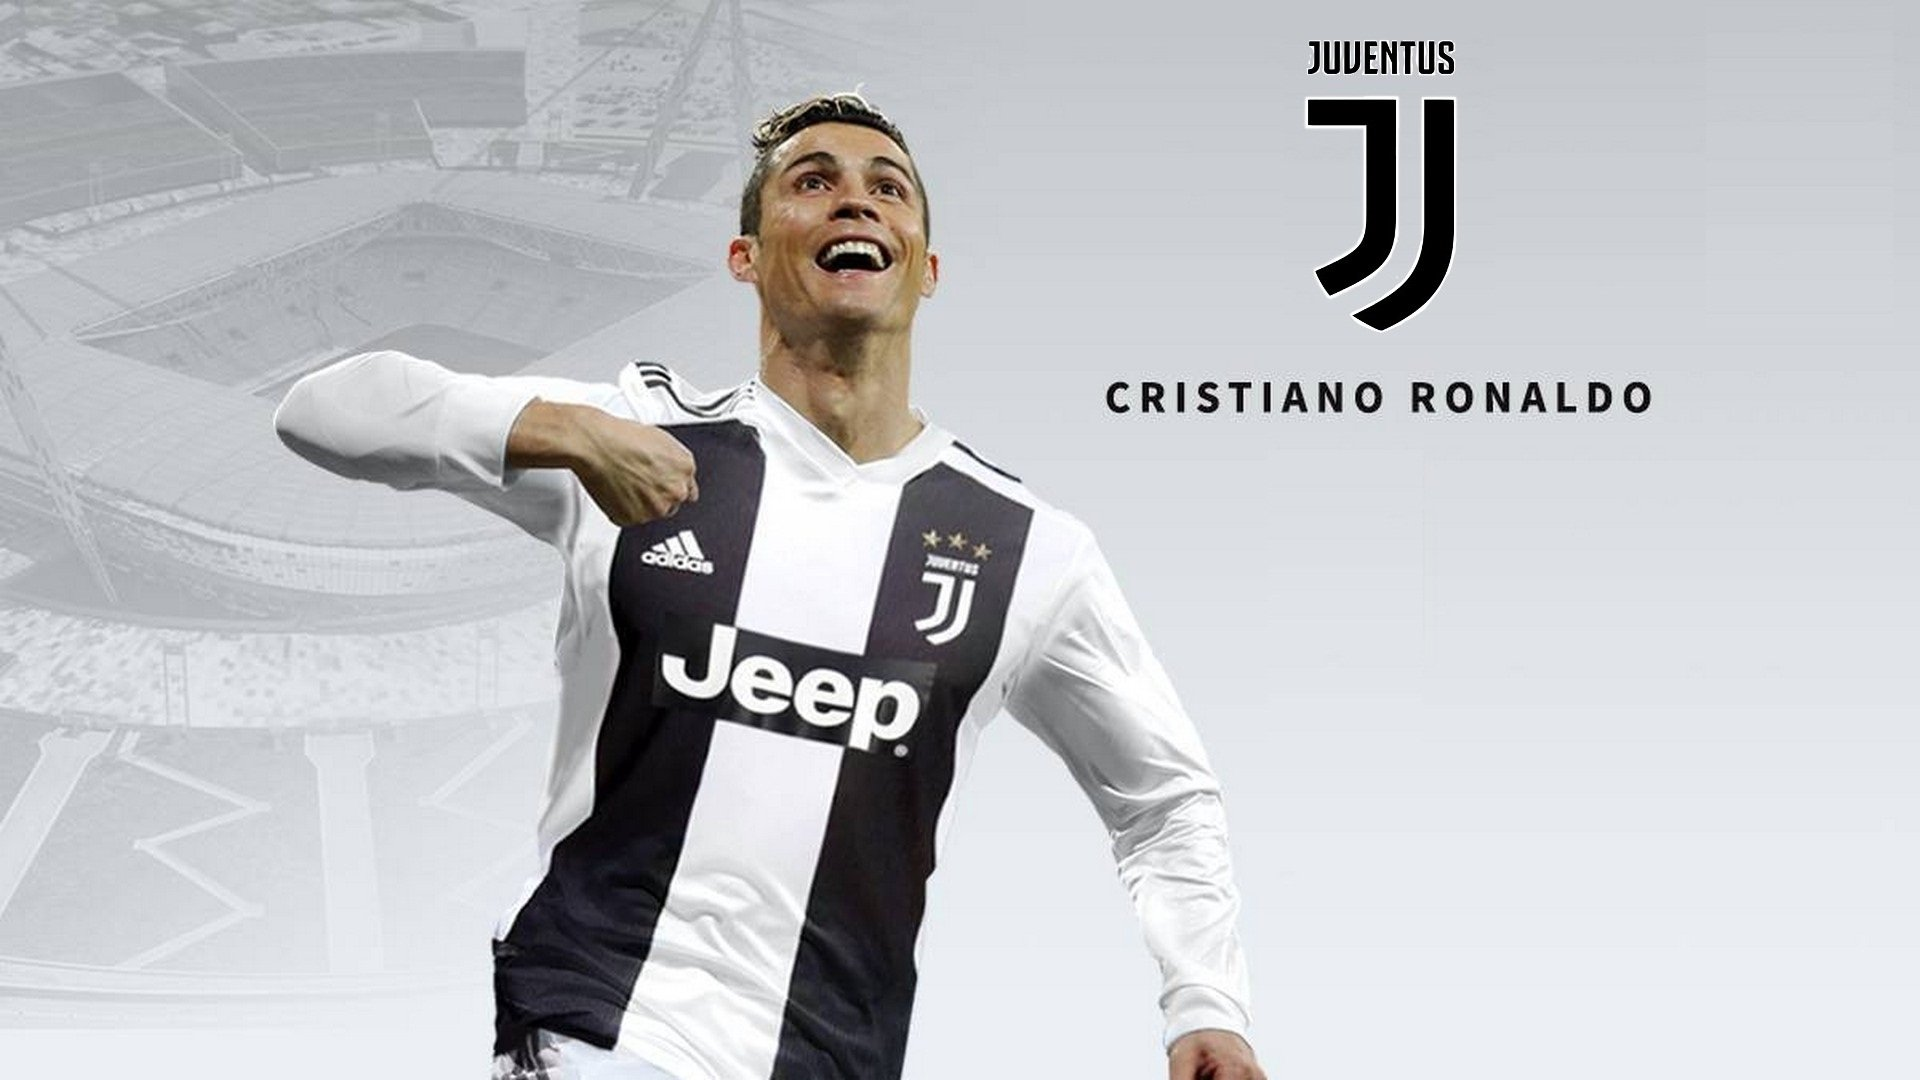 Cristiano Ronaldo Juventus Wallpaper HD 2021 Football Wallpaper 1920x1080